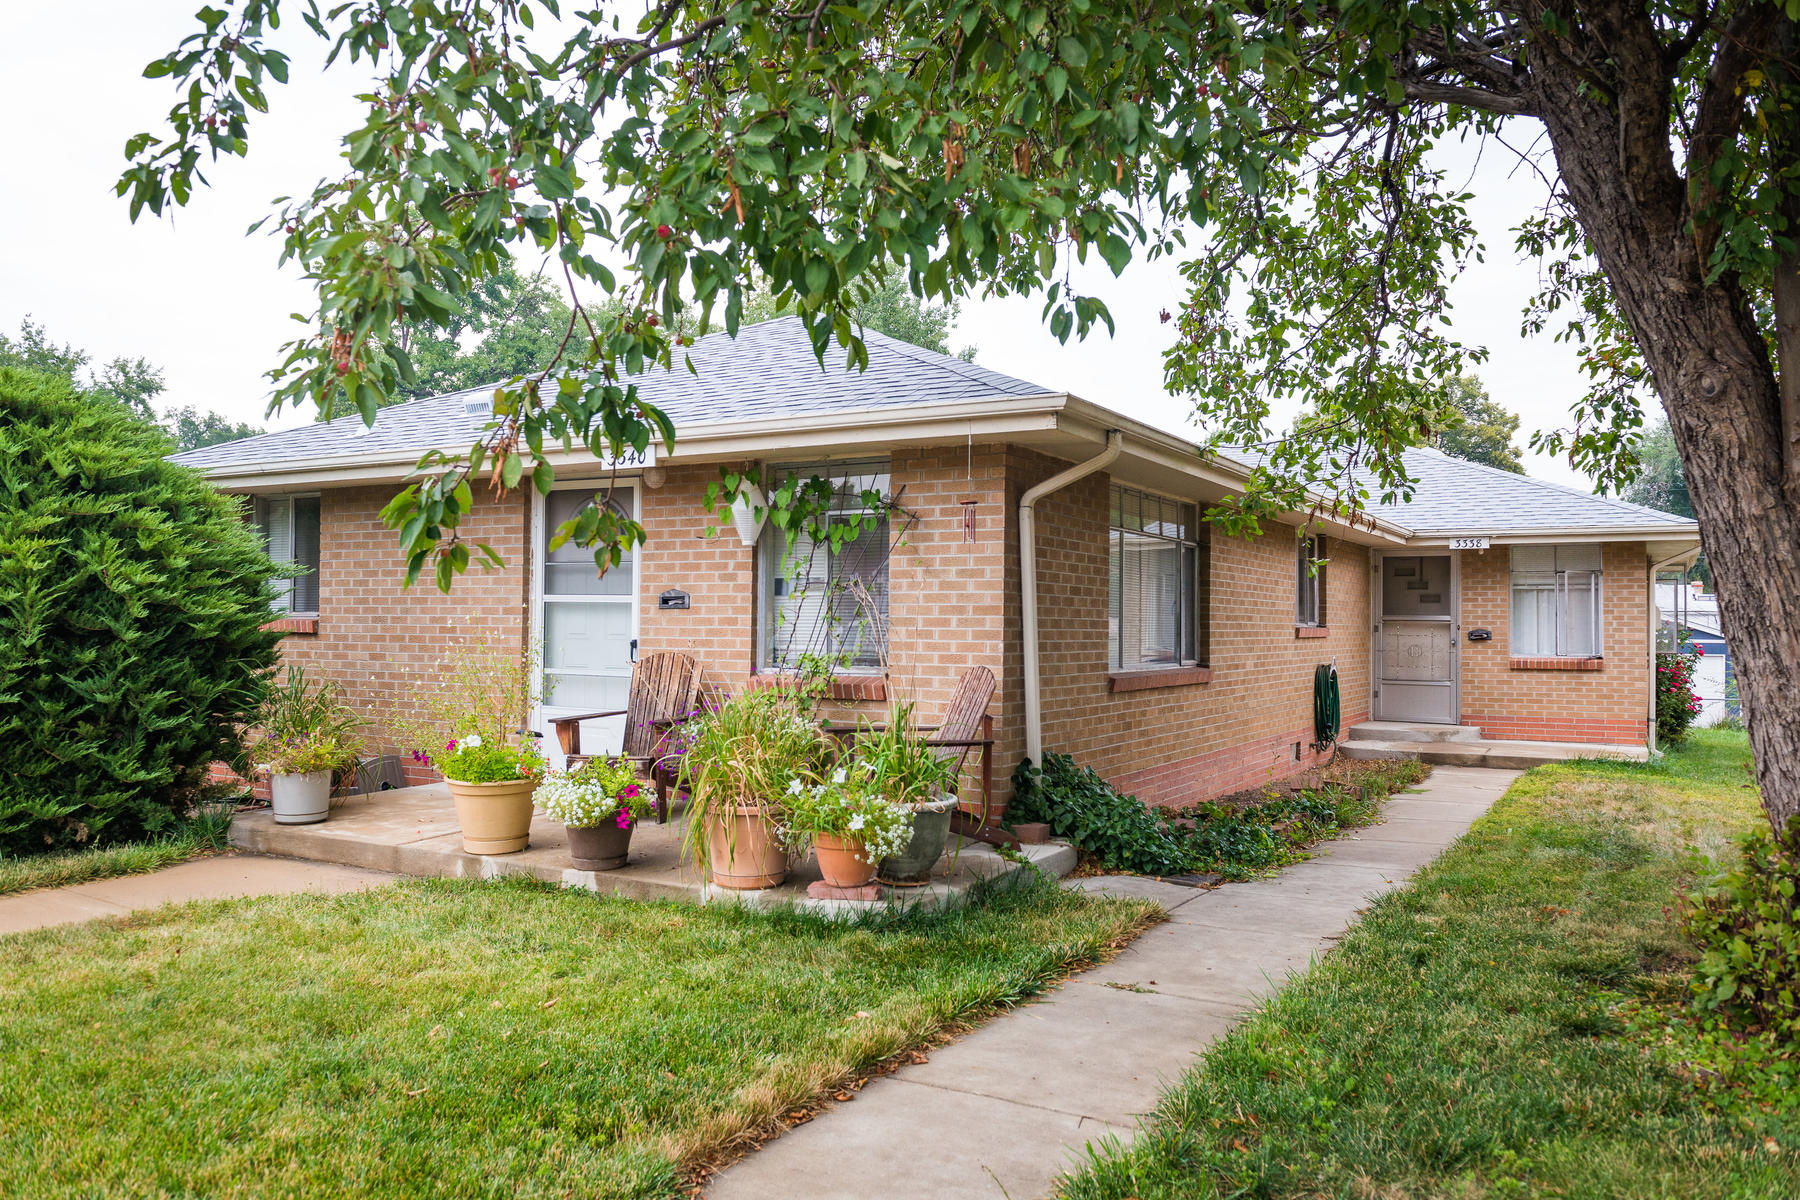 Single Family Home for Active at Great Side By Side Duplex With Upside Potential 3338-3340 Perry St Denver, Colorado 80212 United States